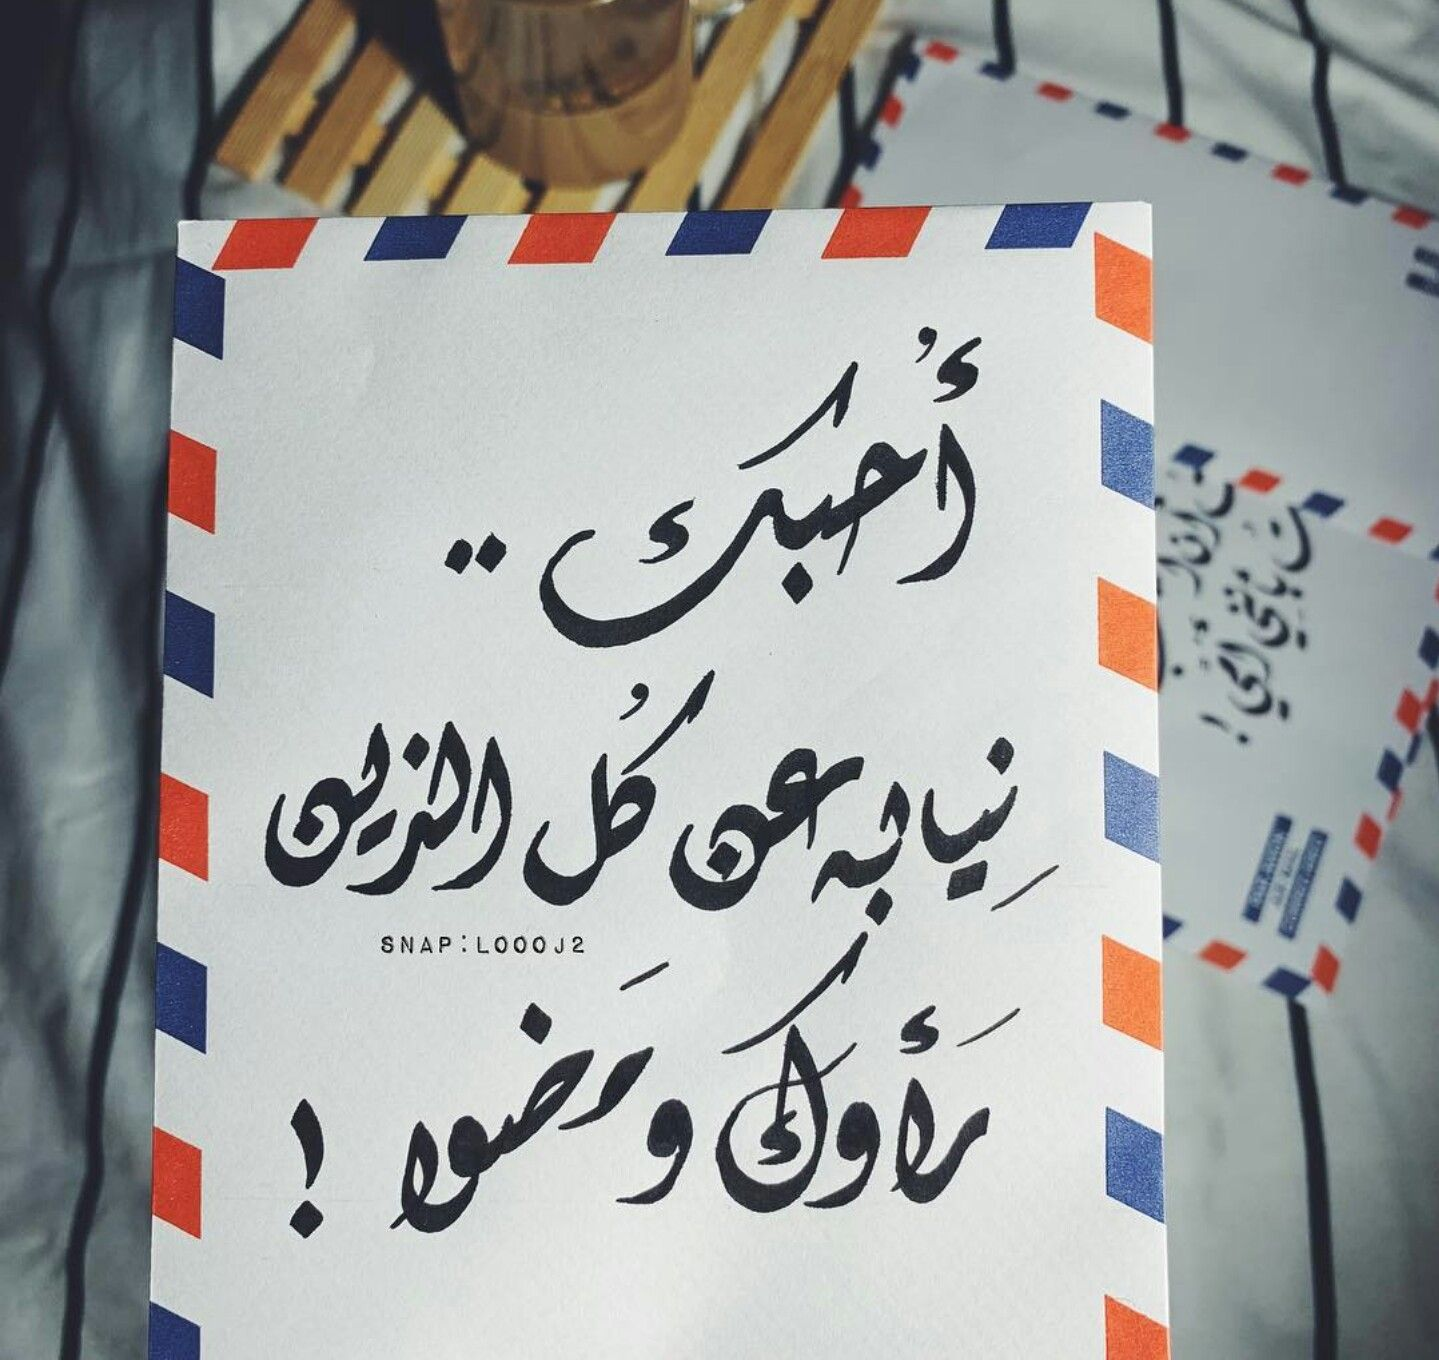 Pin By Nour On كتابه على الورق Calligraphy Quotes Love Quotes For Him Mood Quotes